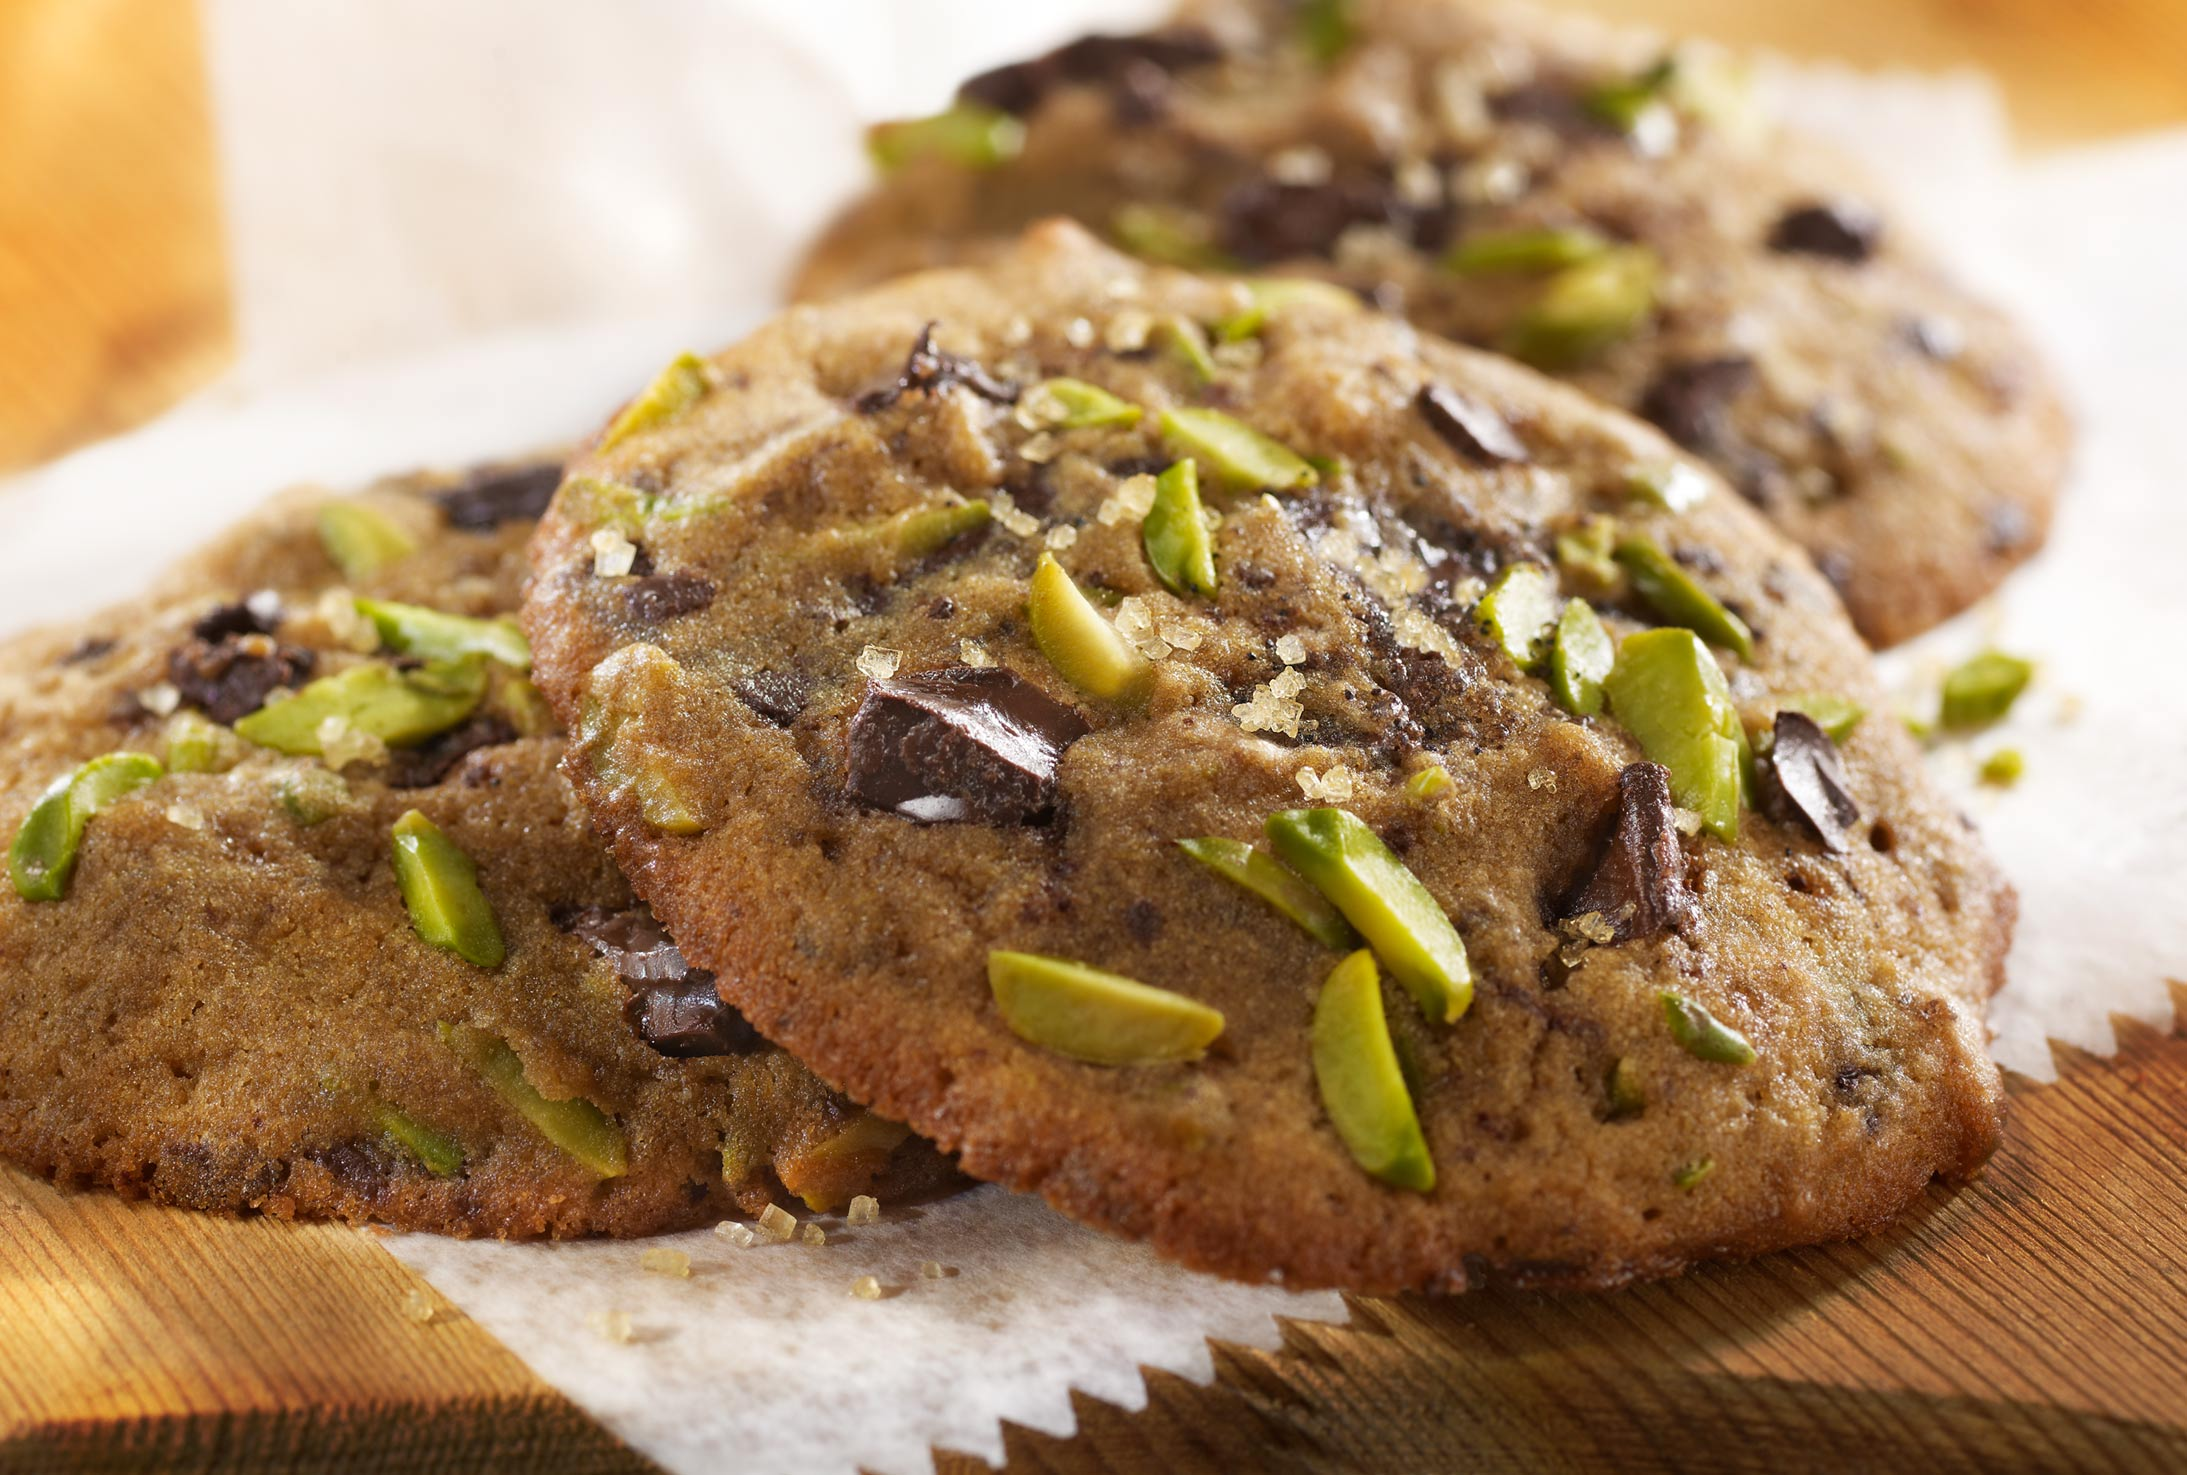 Glasshouse Assignment - David Bishop - Food Photography - Molasses Pistachio Cookies